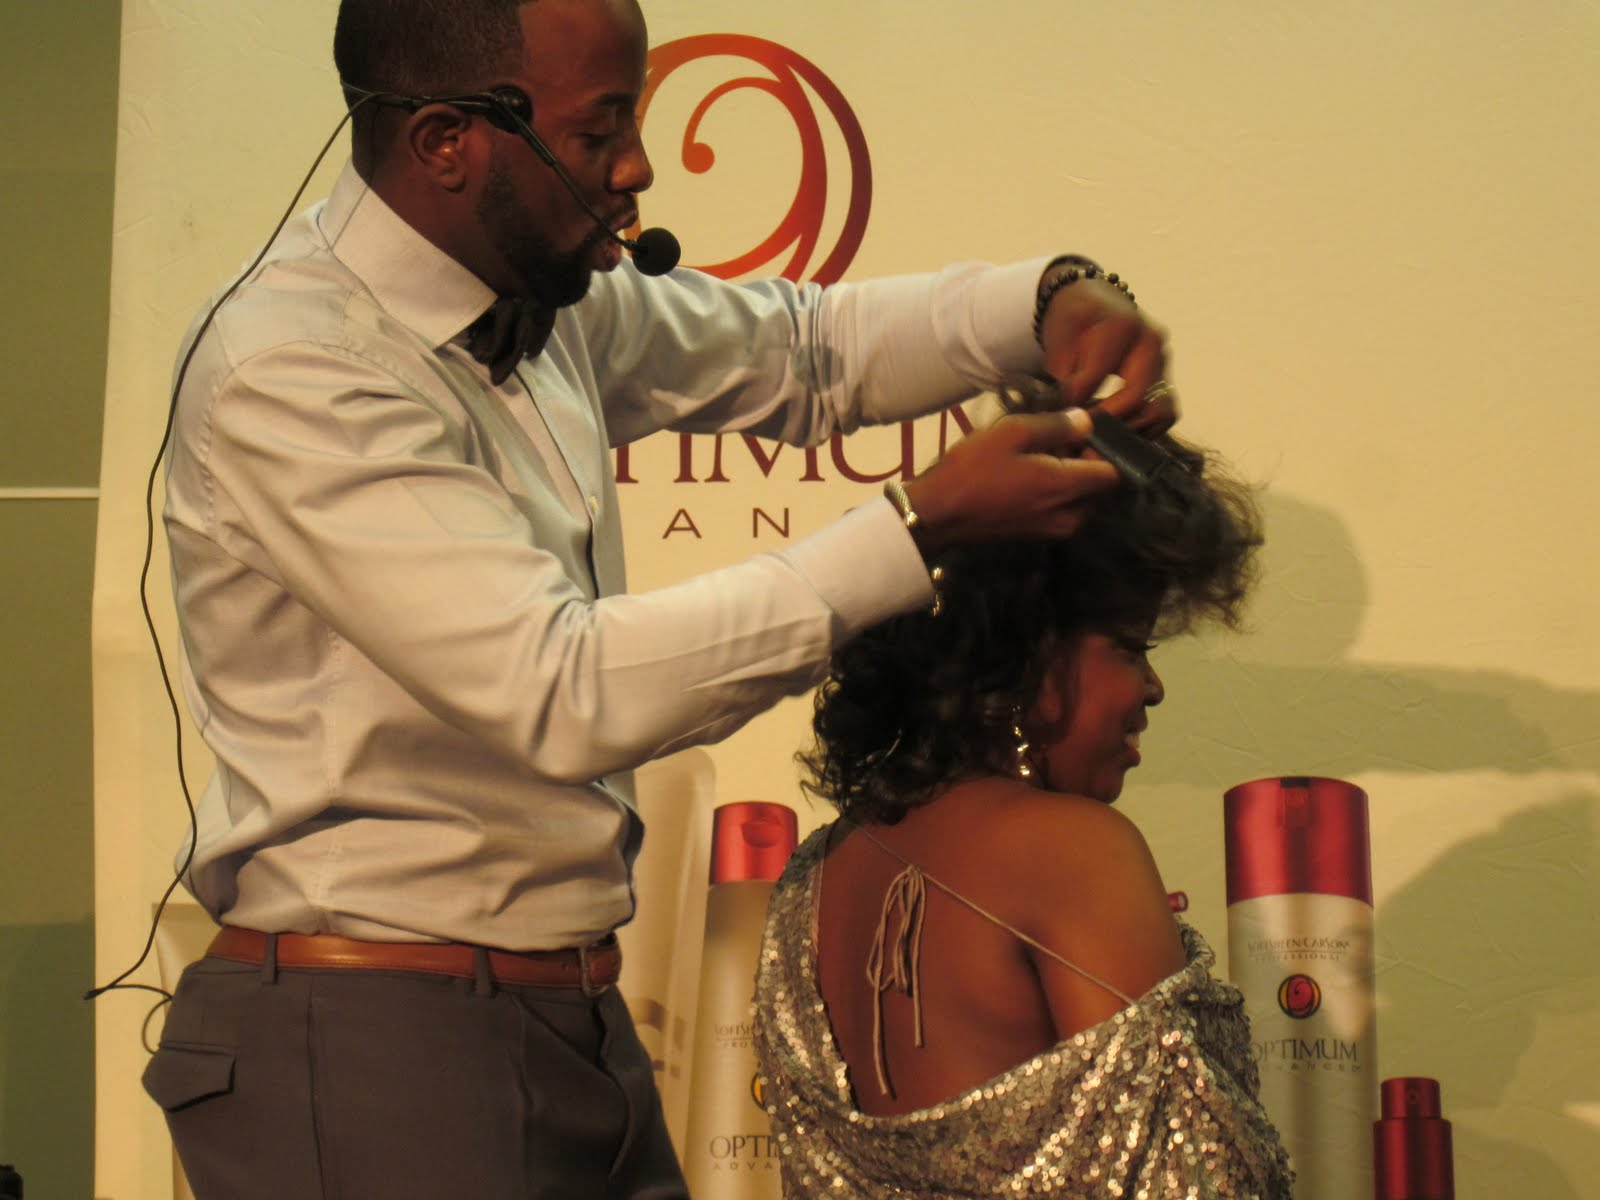 Hairstylist Johnny Wright : PhenomenalhairCare: August 2011 Hair Show: Johnny Wright